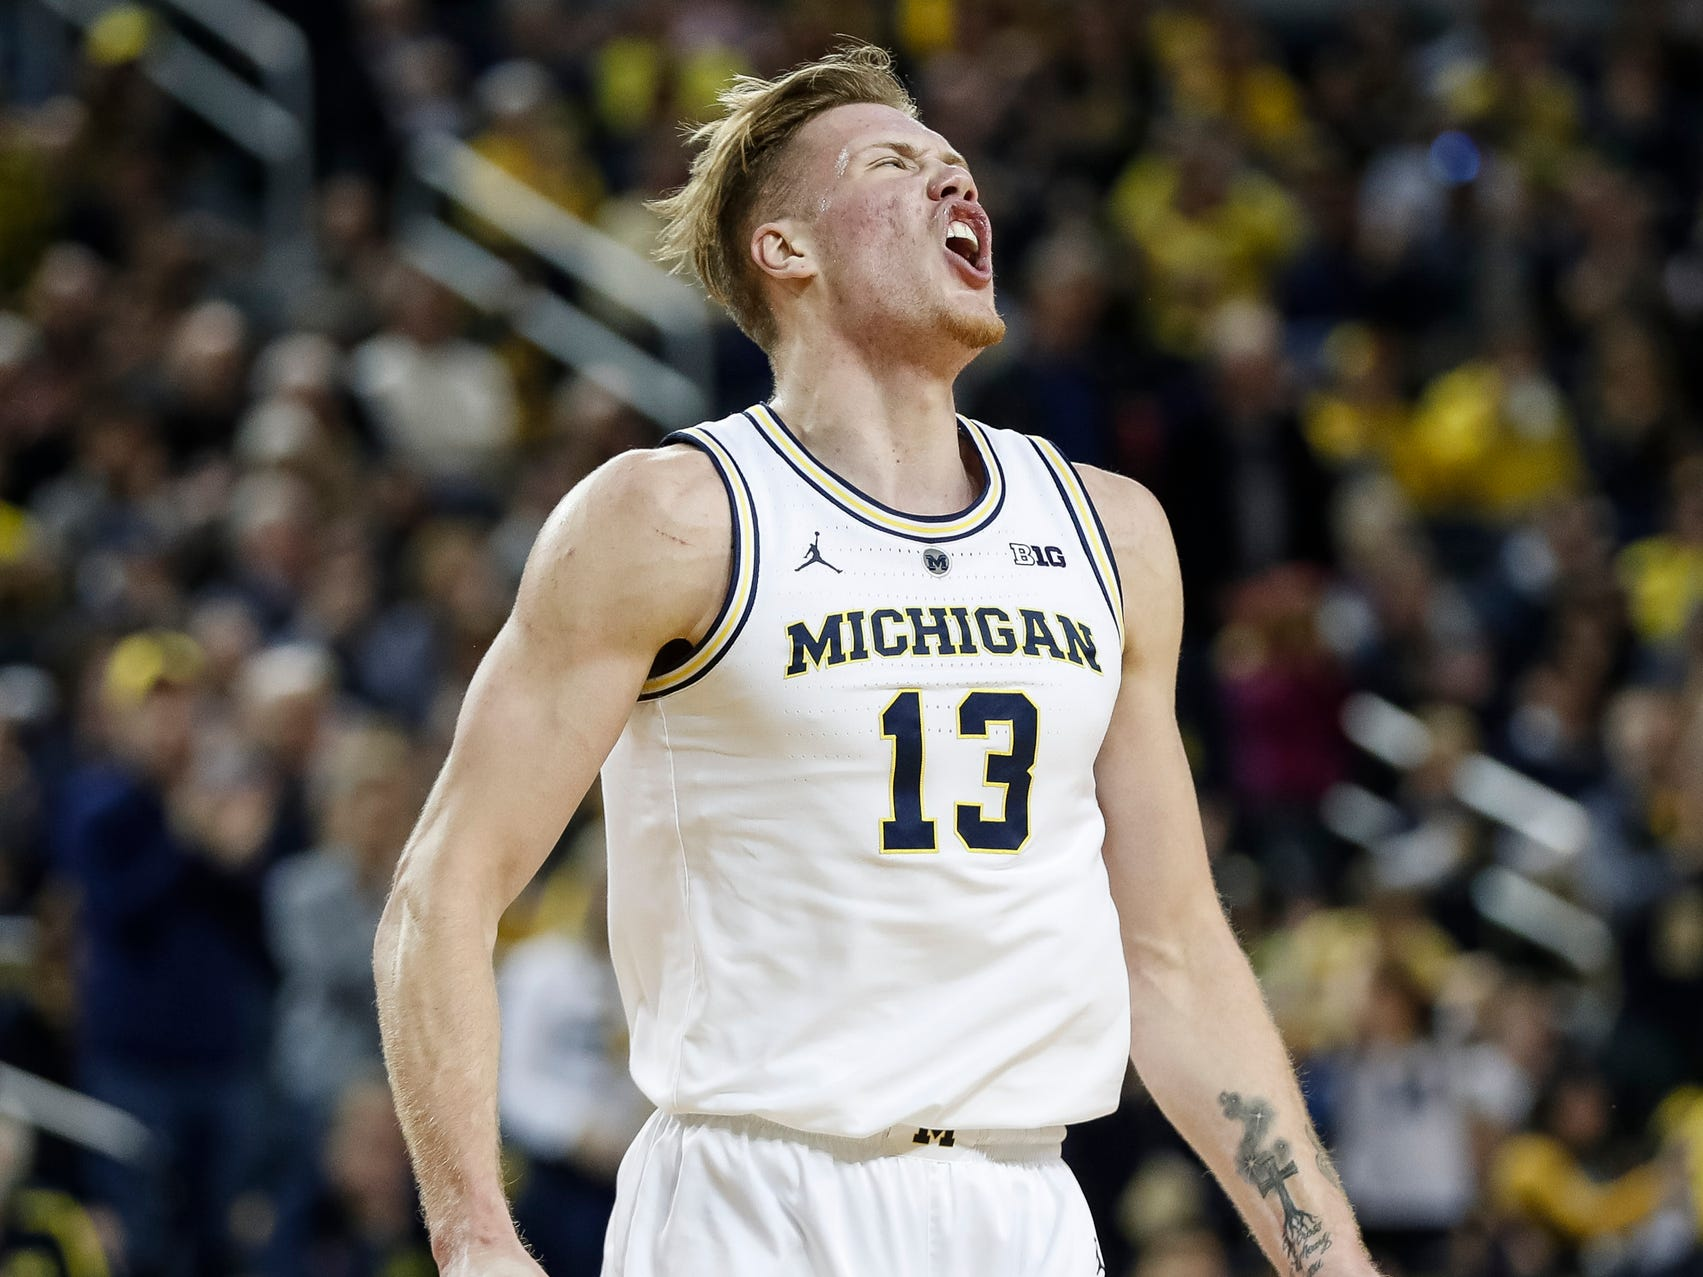 Michigan forward Ignas Brazdeikis (13) celebrates a dunk during the first half against Purdue at Crisler Center on Saturday, Dec. 1, 2018.